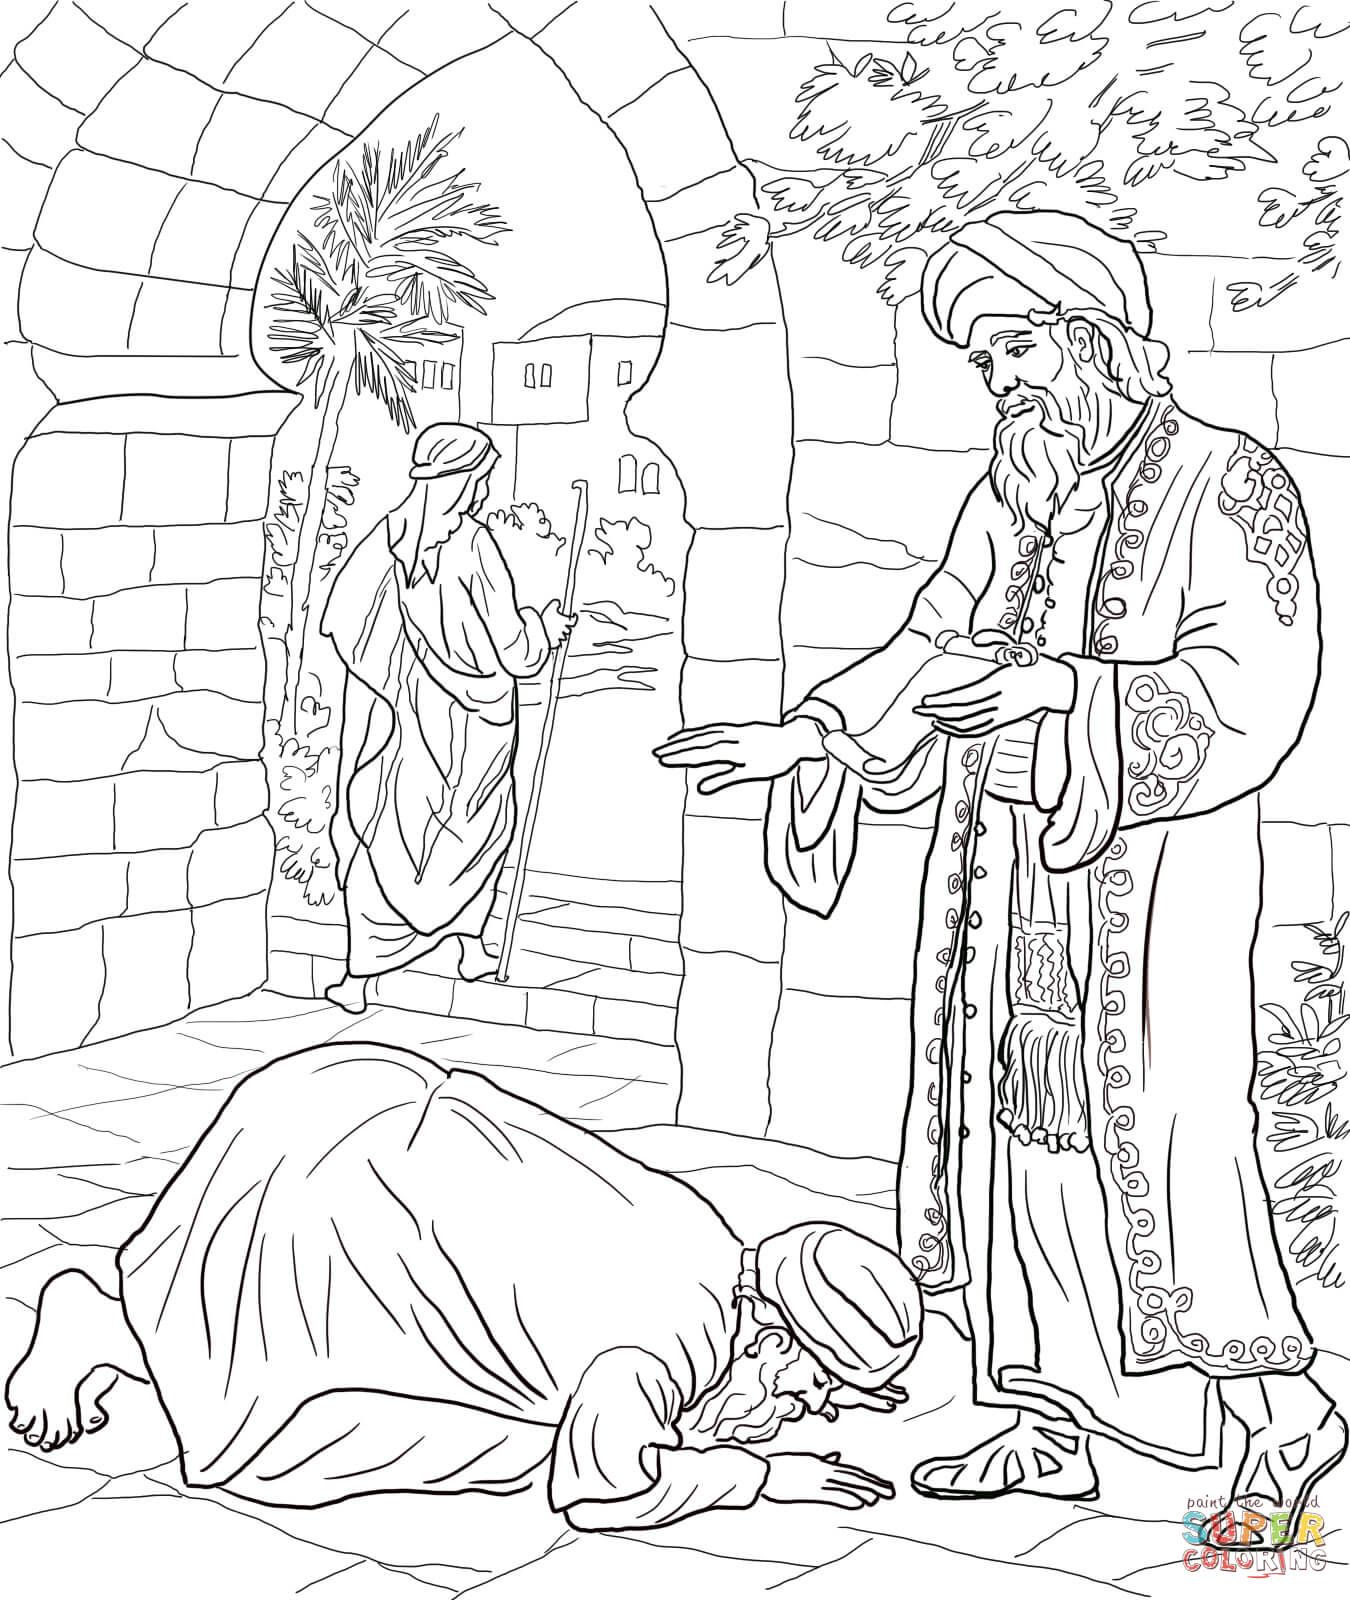 Parable of the Two Debtors coloring page from